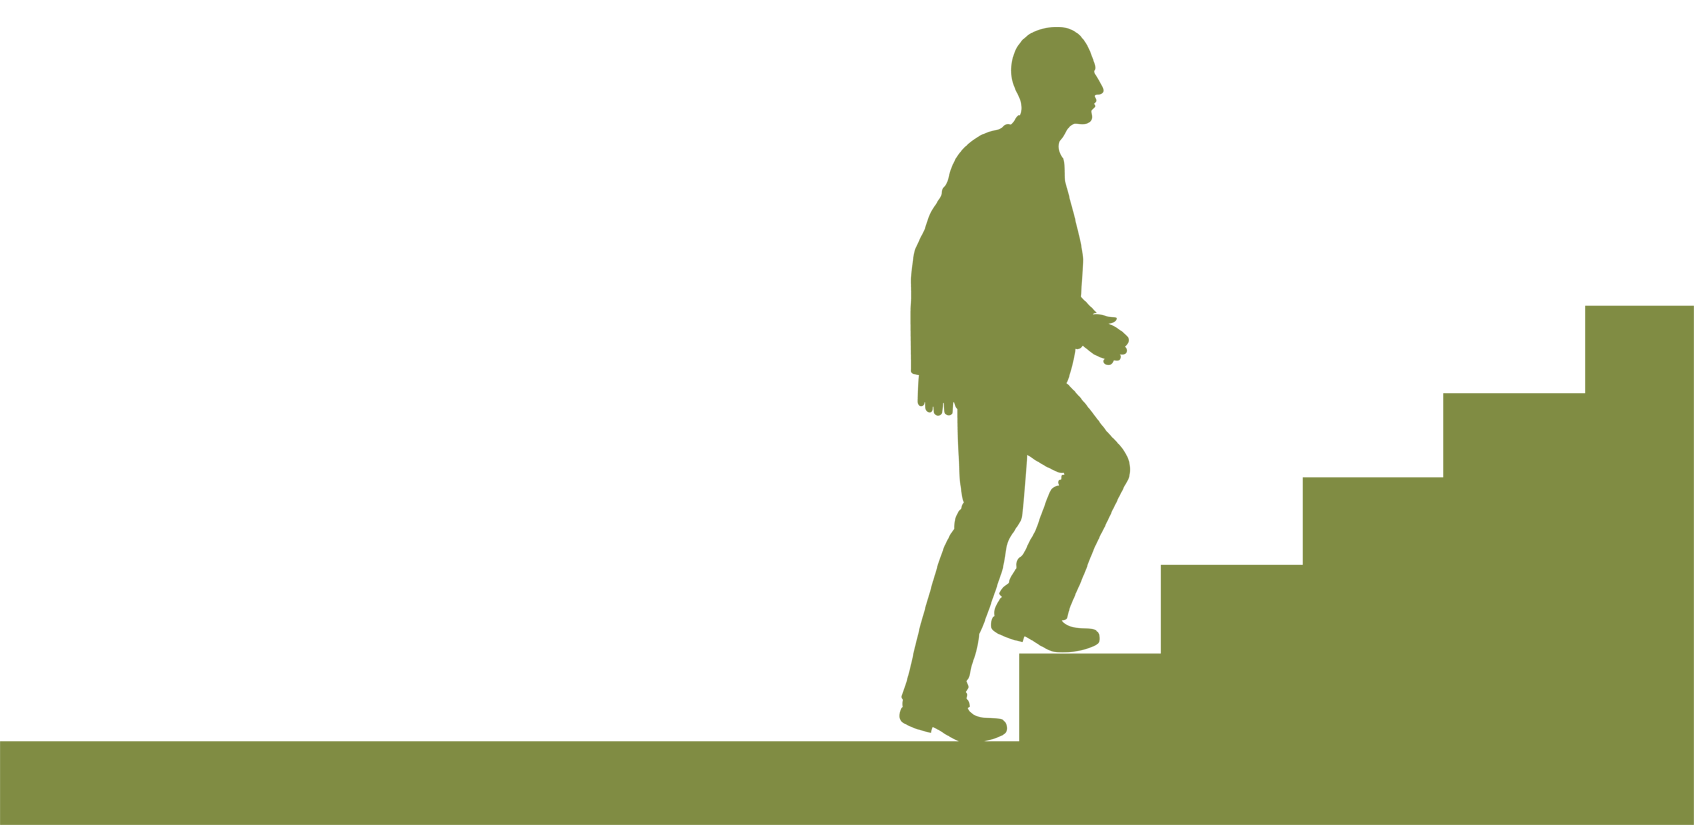 Walking up stairs silhouette. Staircase clipart success